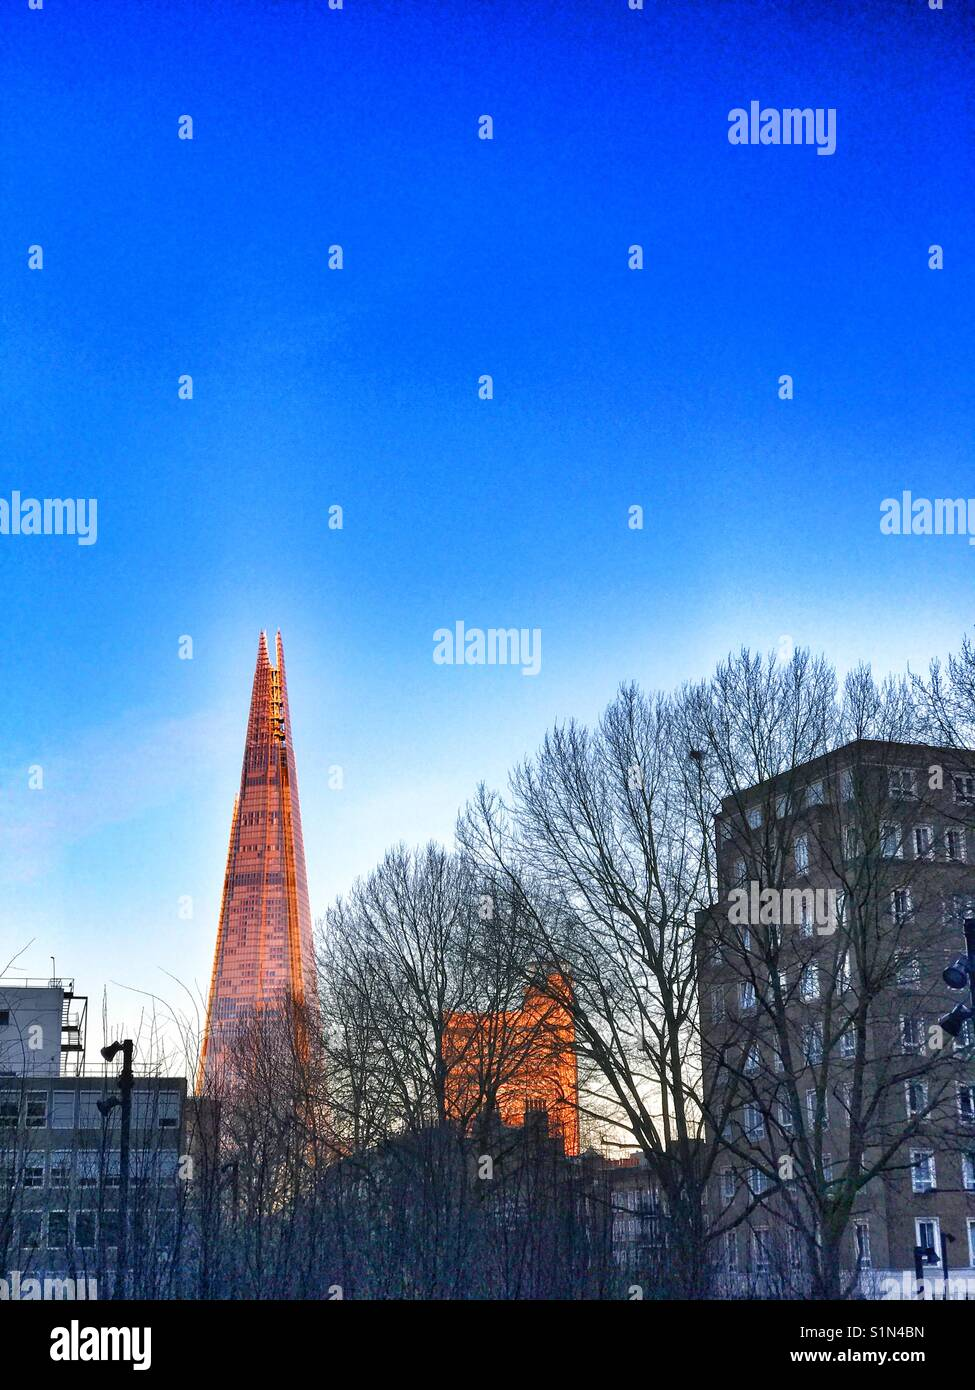 The Shard building, London - Stock Image